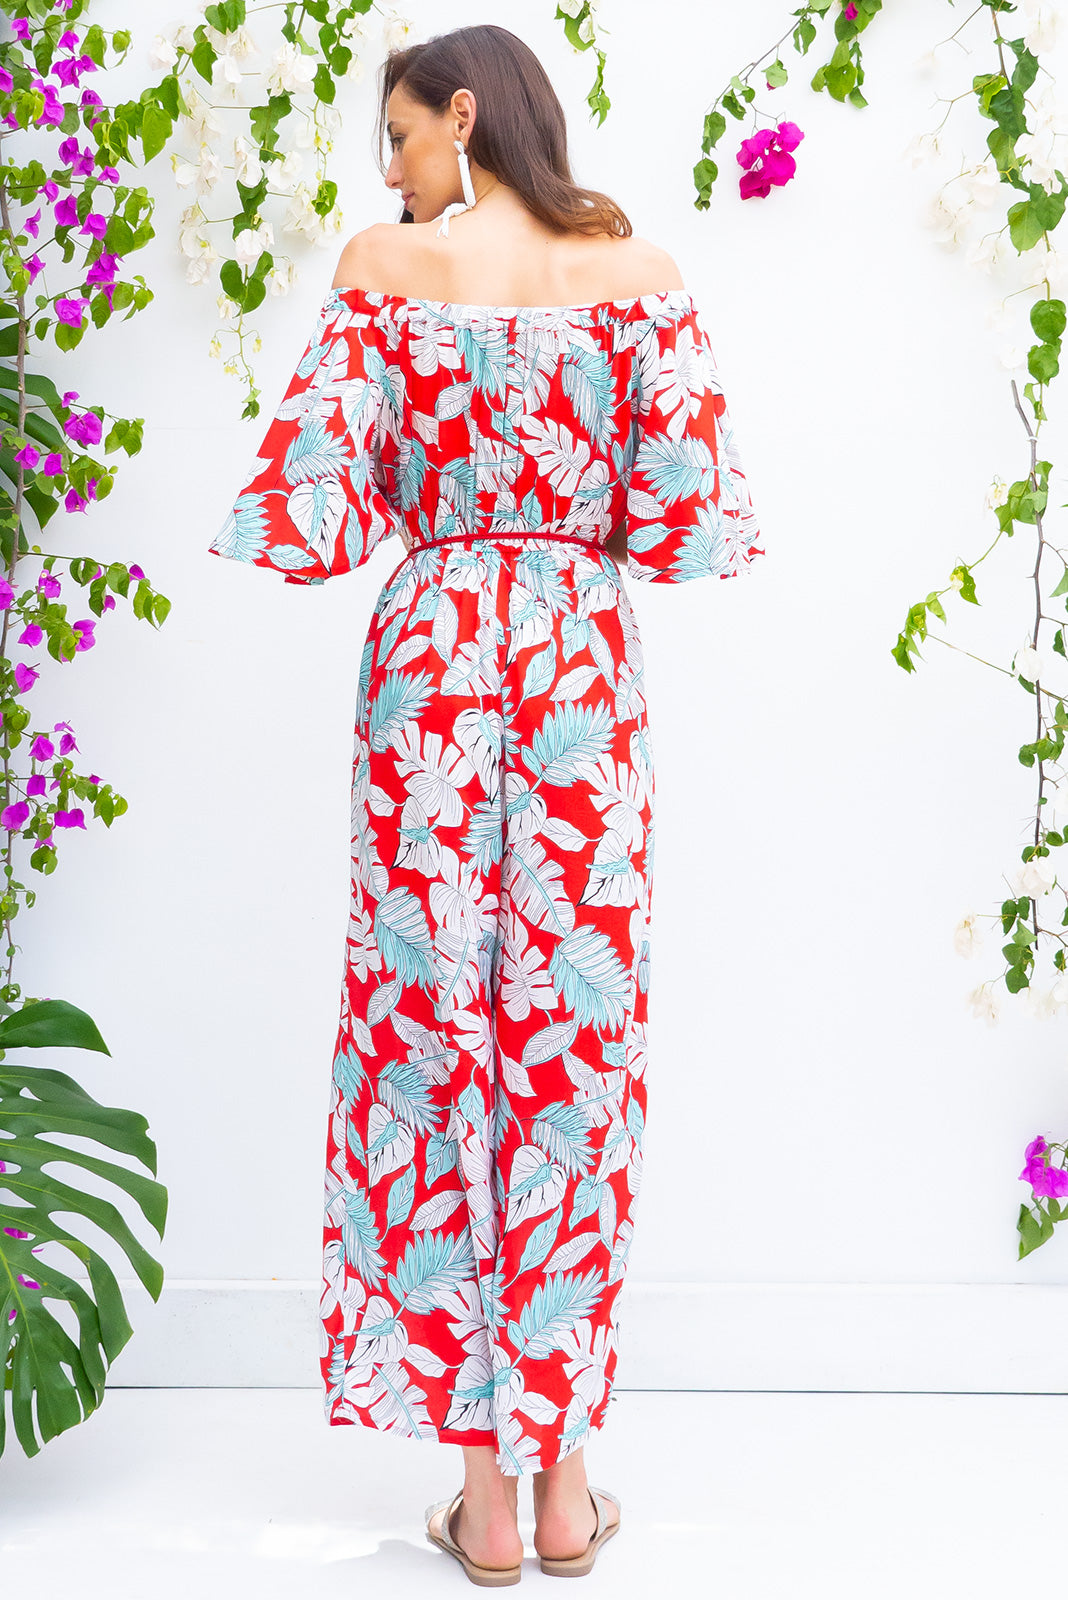 Malibu Rhonda Red Jumpsuit off the shoulder soft fit maxi jumpsuit with an elastic waist in a bright red tropical leaf print on 100% rayon with side pockets